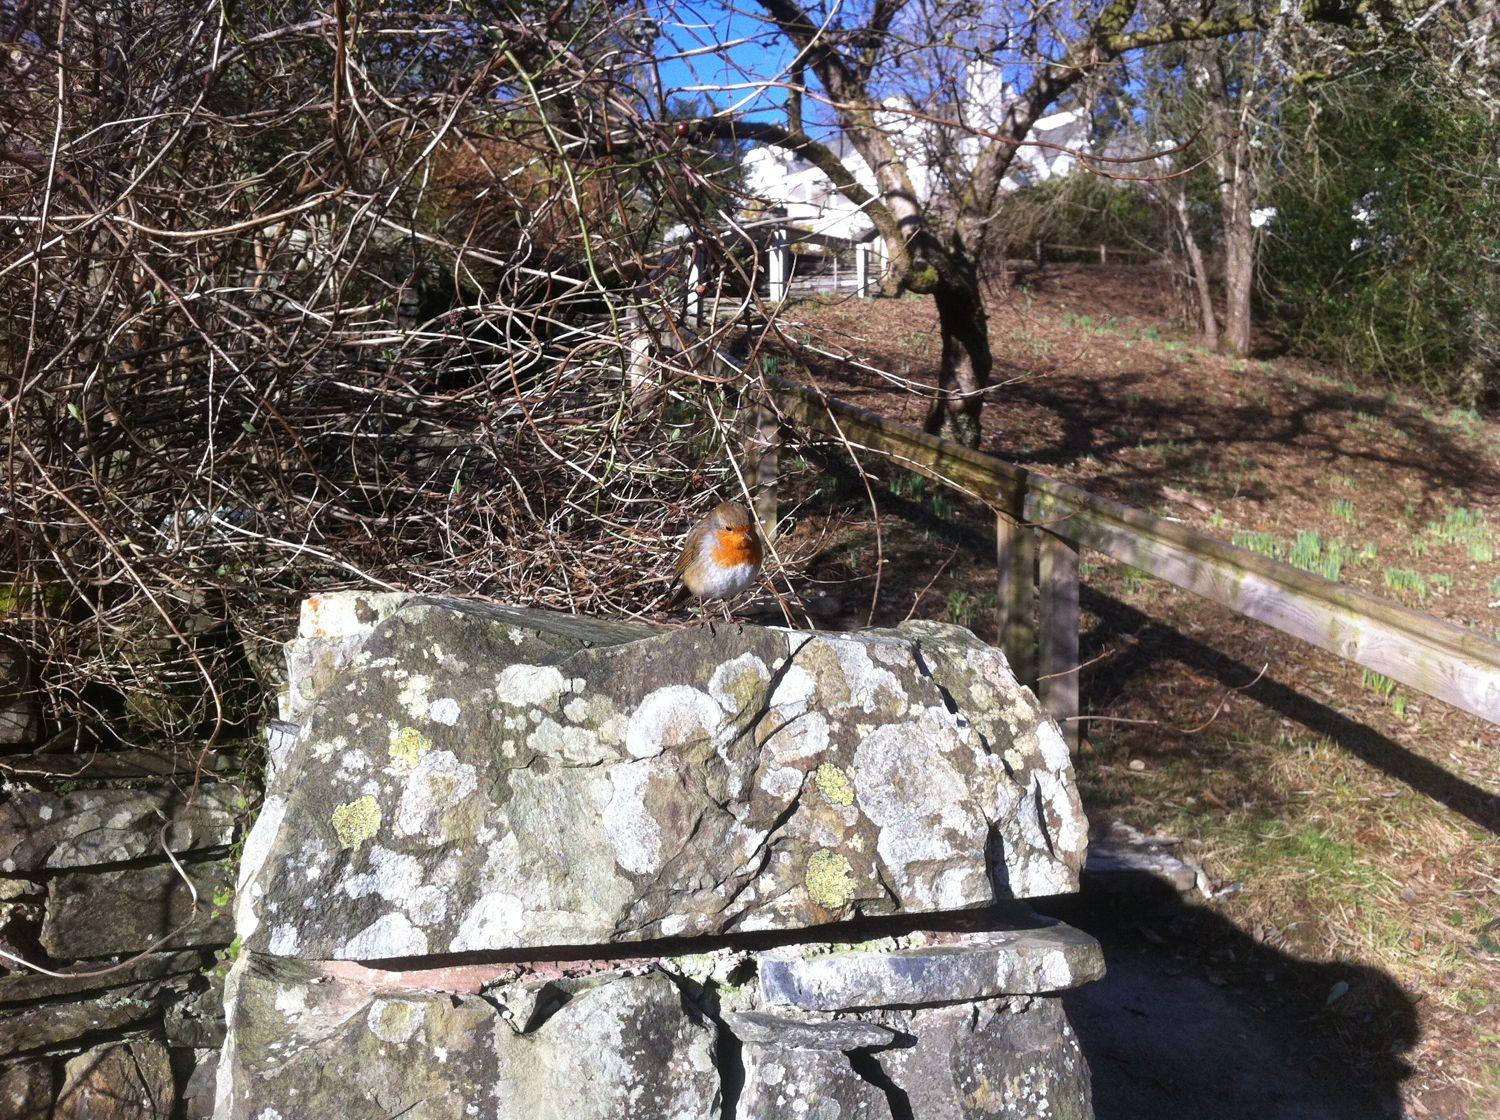 Robin playfully skipping along the wall next to us